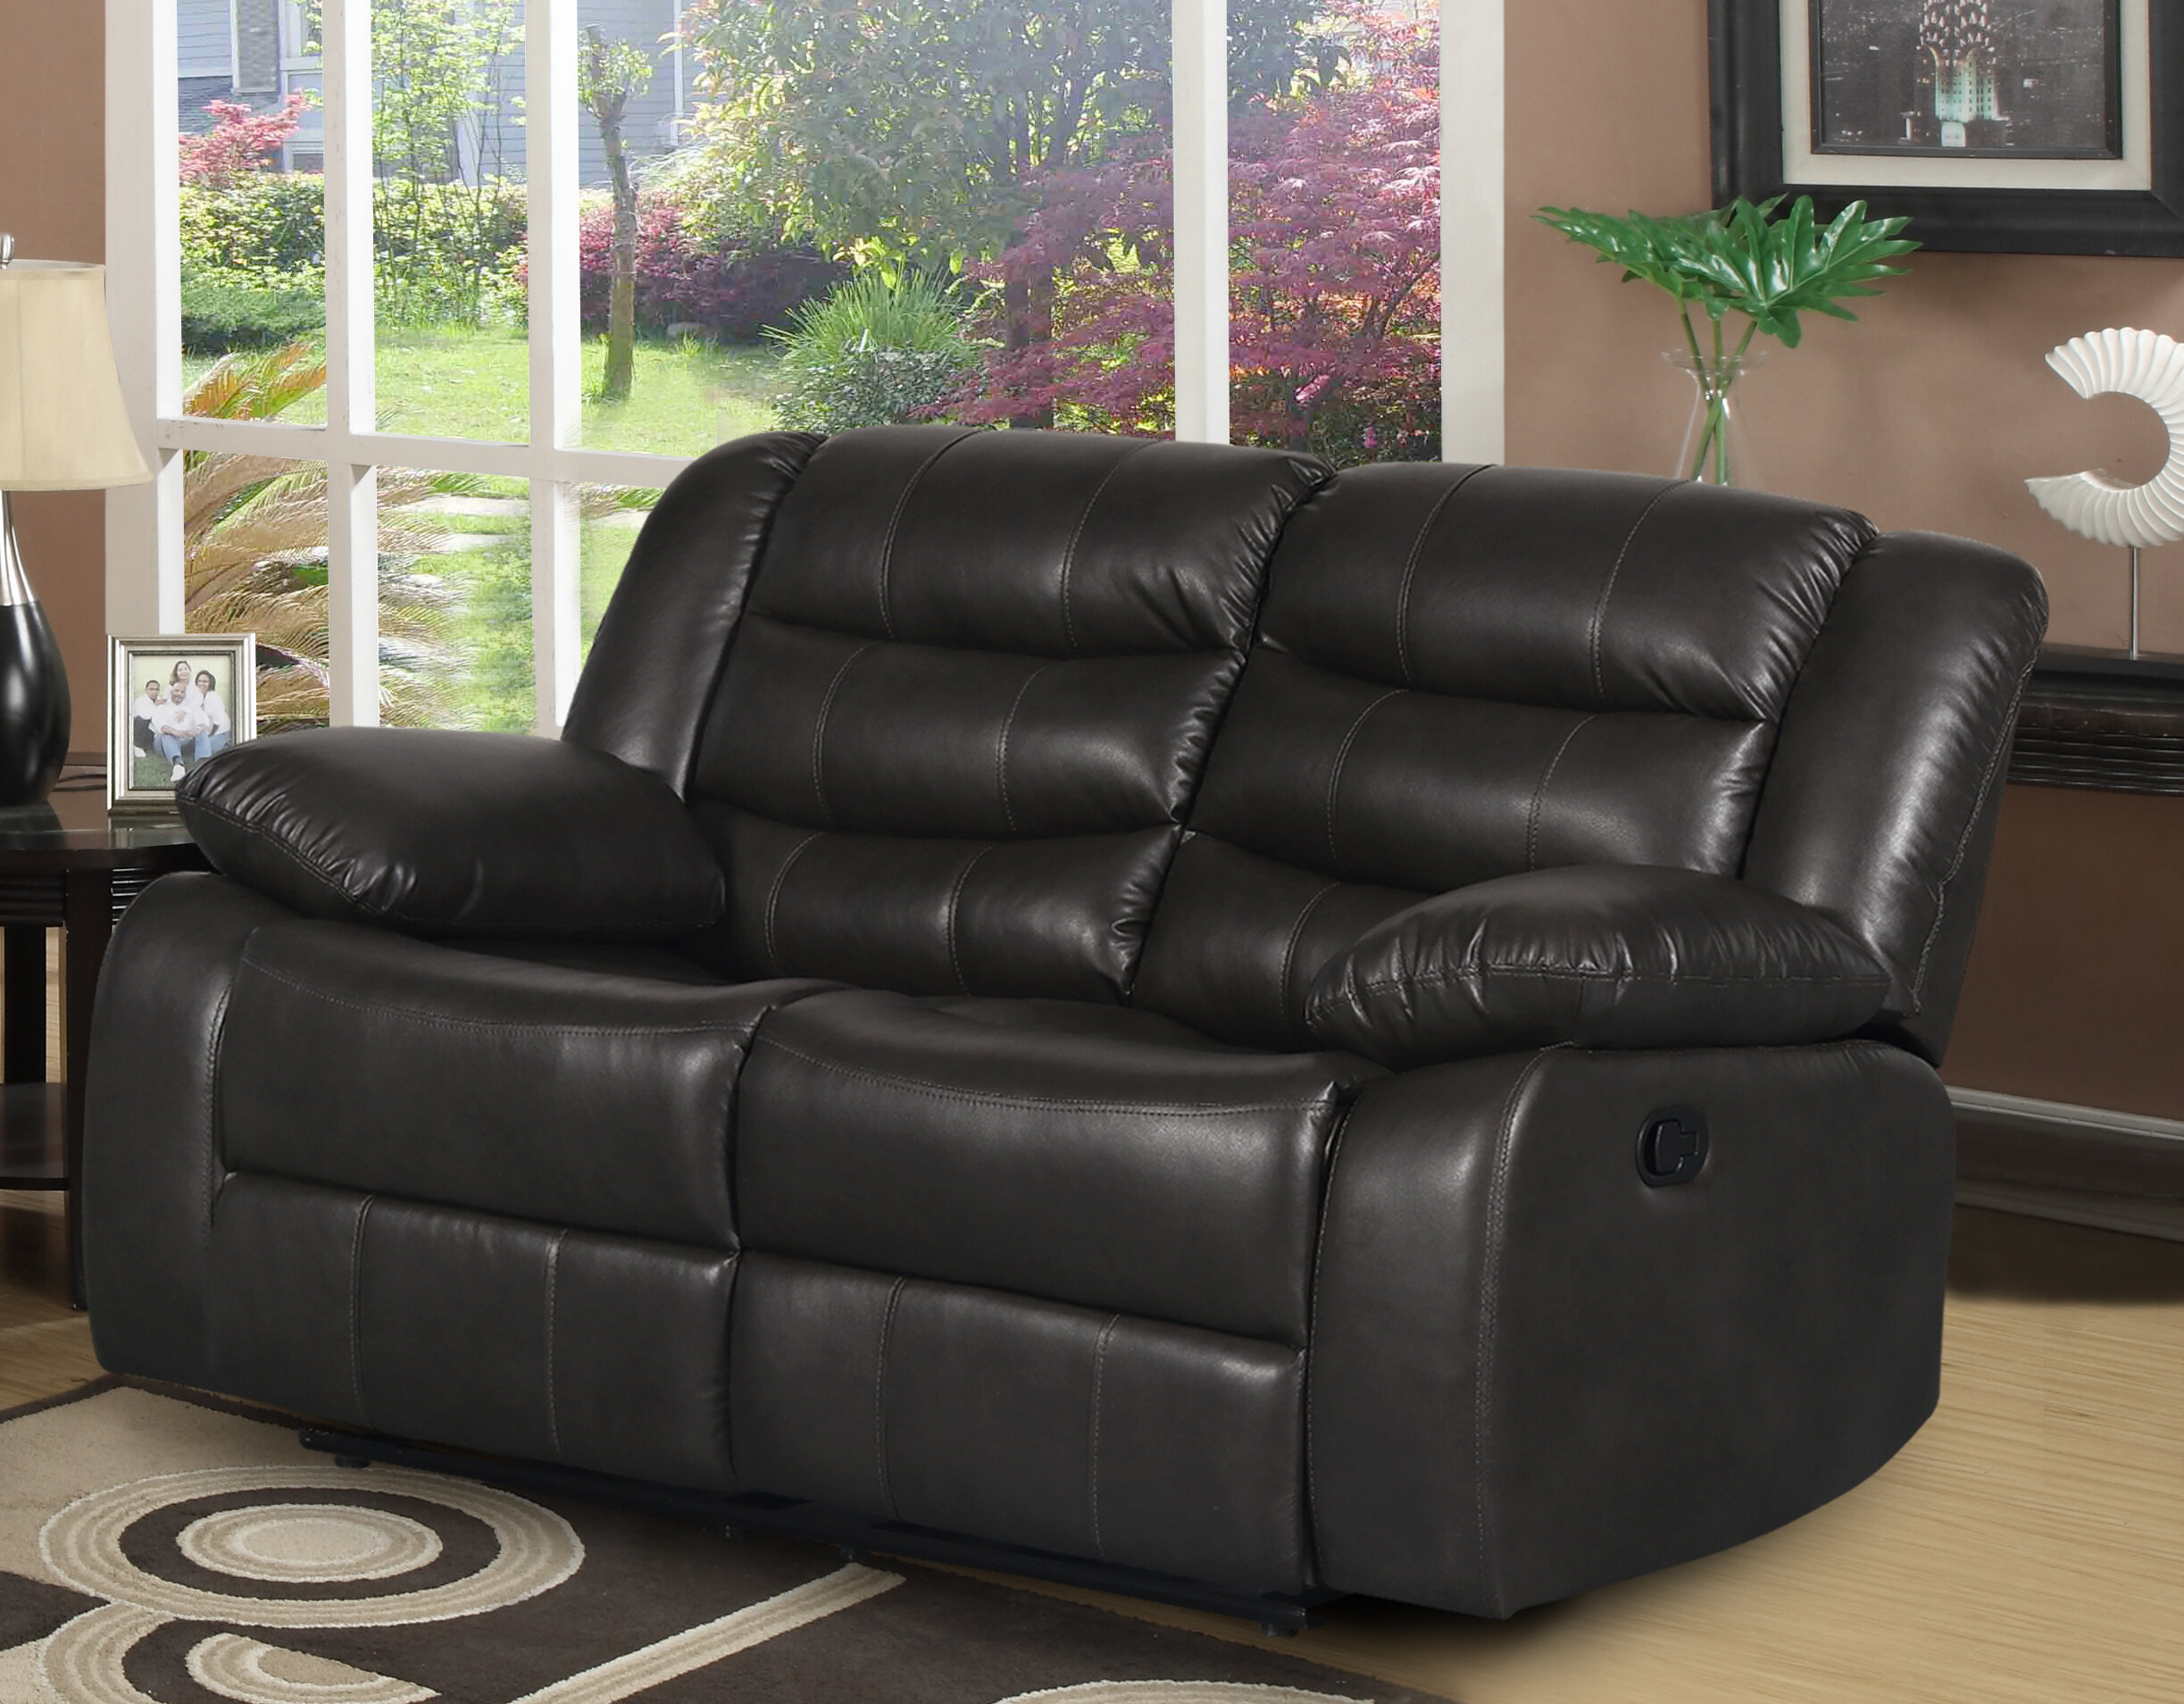 Tremendous Trista Reclining Loveseat Pabps2019 Chair Design Images Pabps2019Com